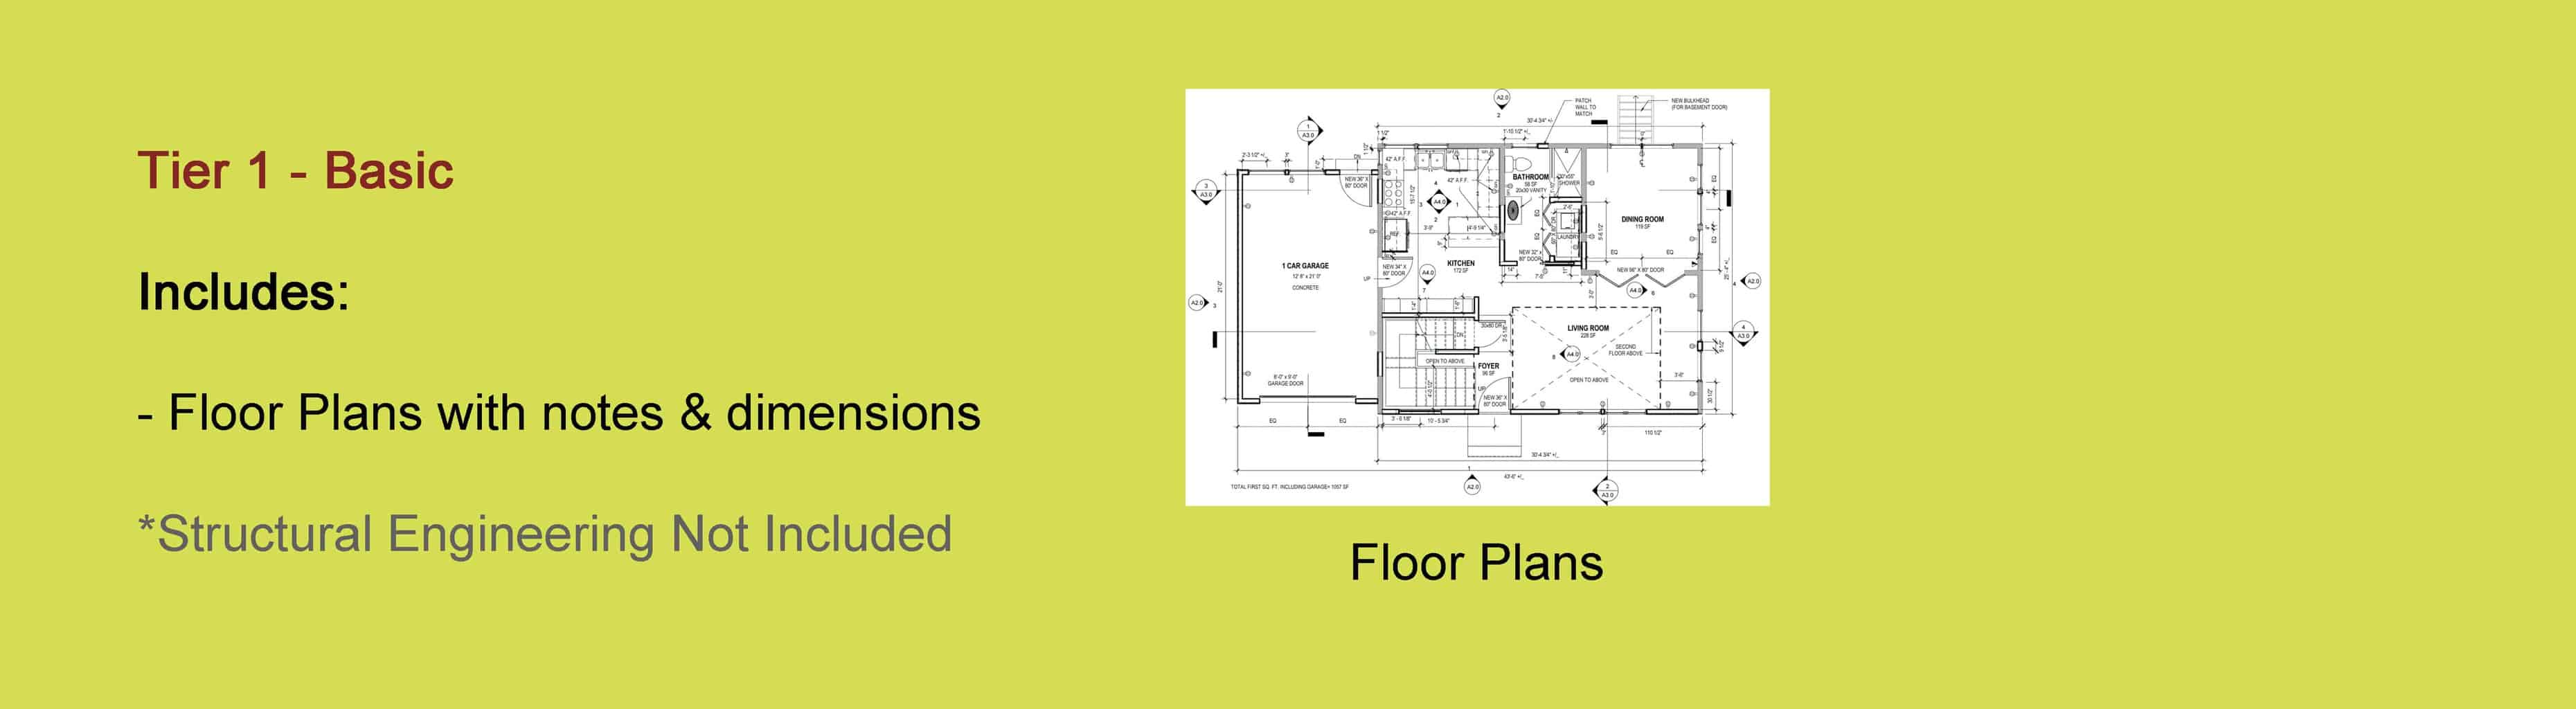 On Some Occasion The Only Drawings That Clients Need Is Floor Plans Plan Include Dimensions Notes And Sometimes Demolition